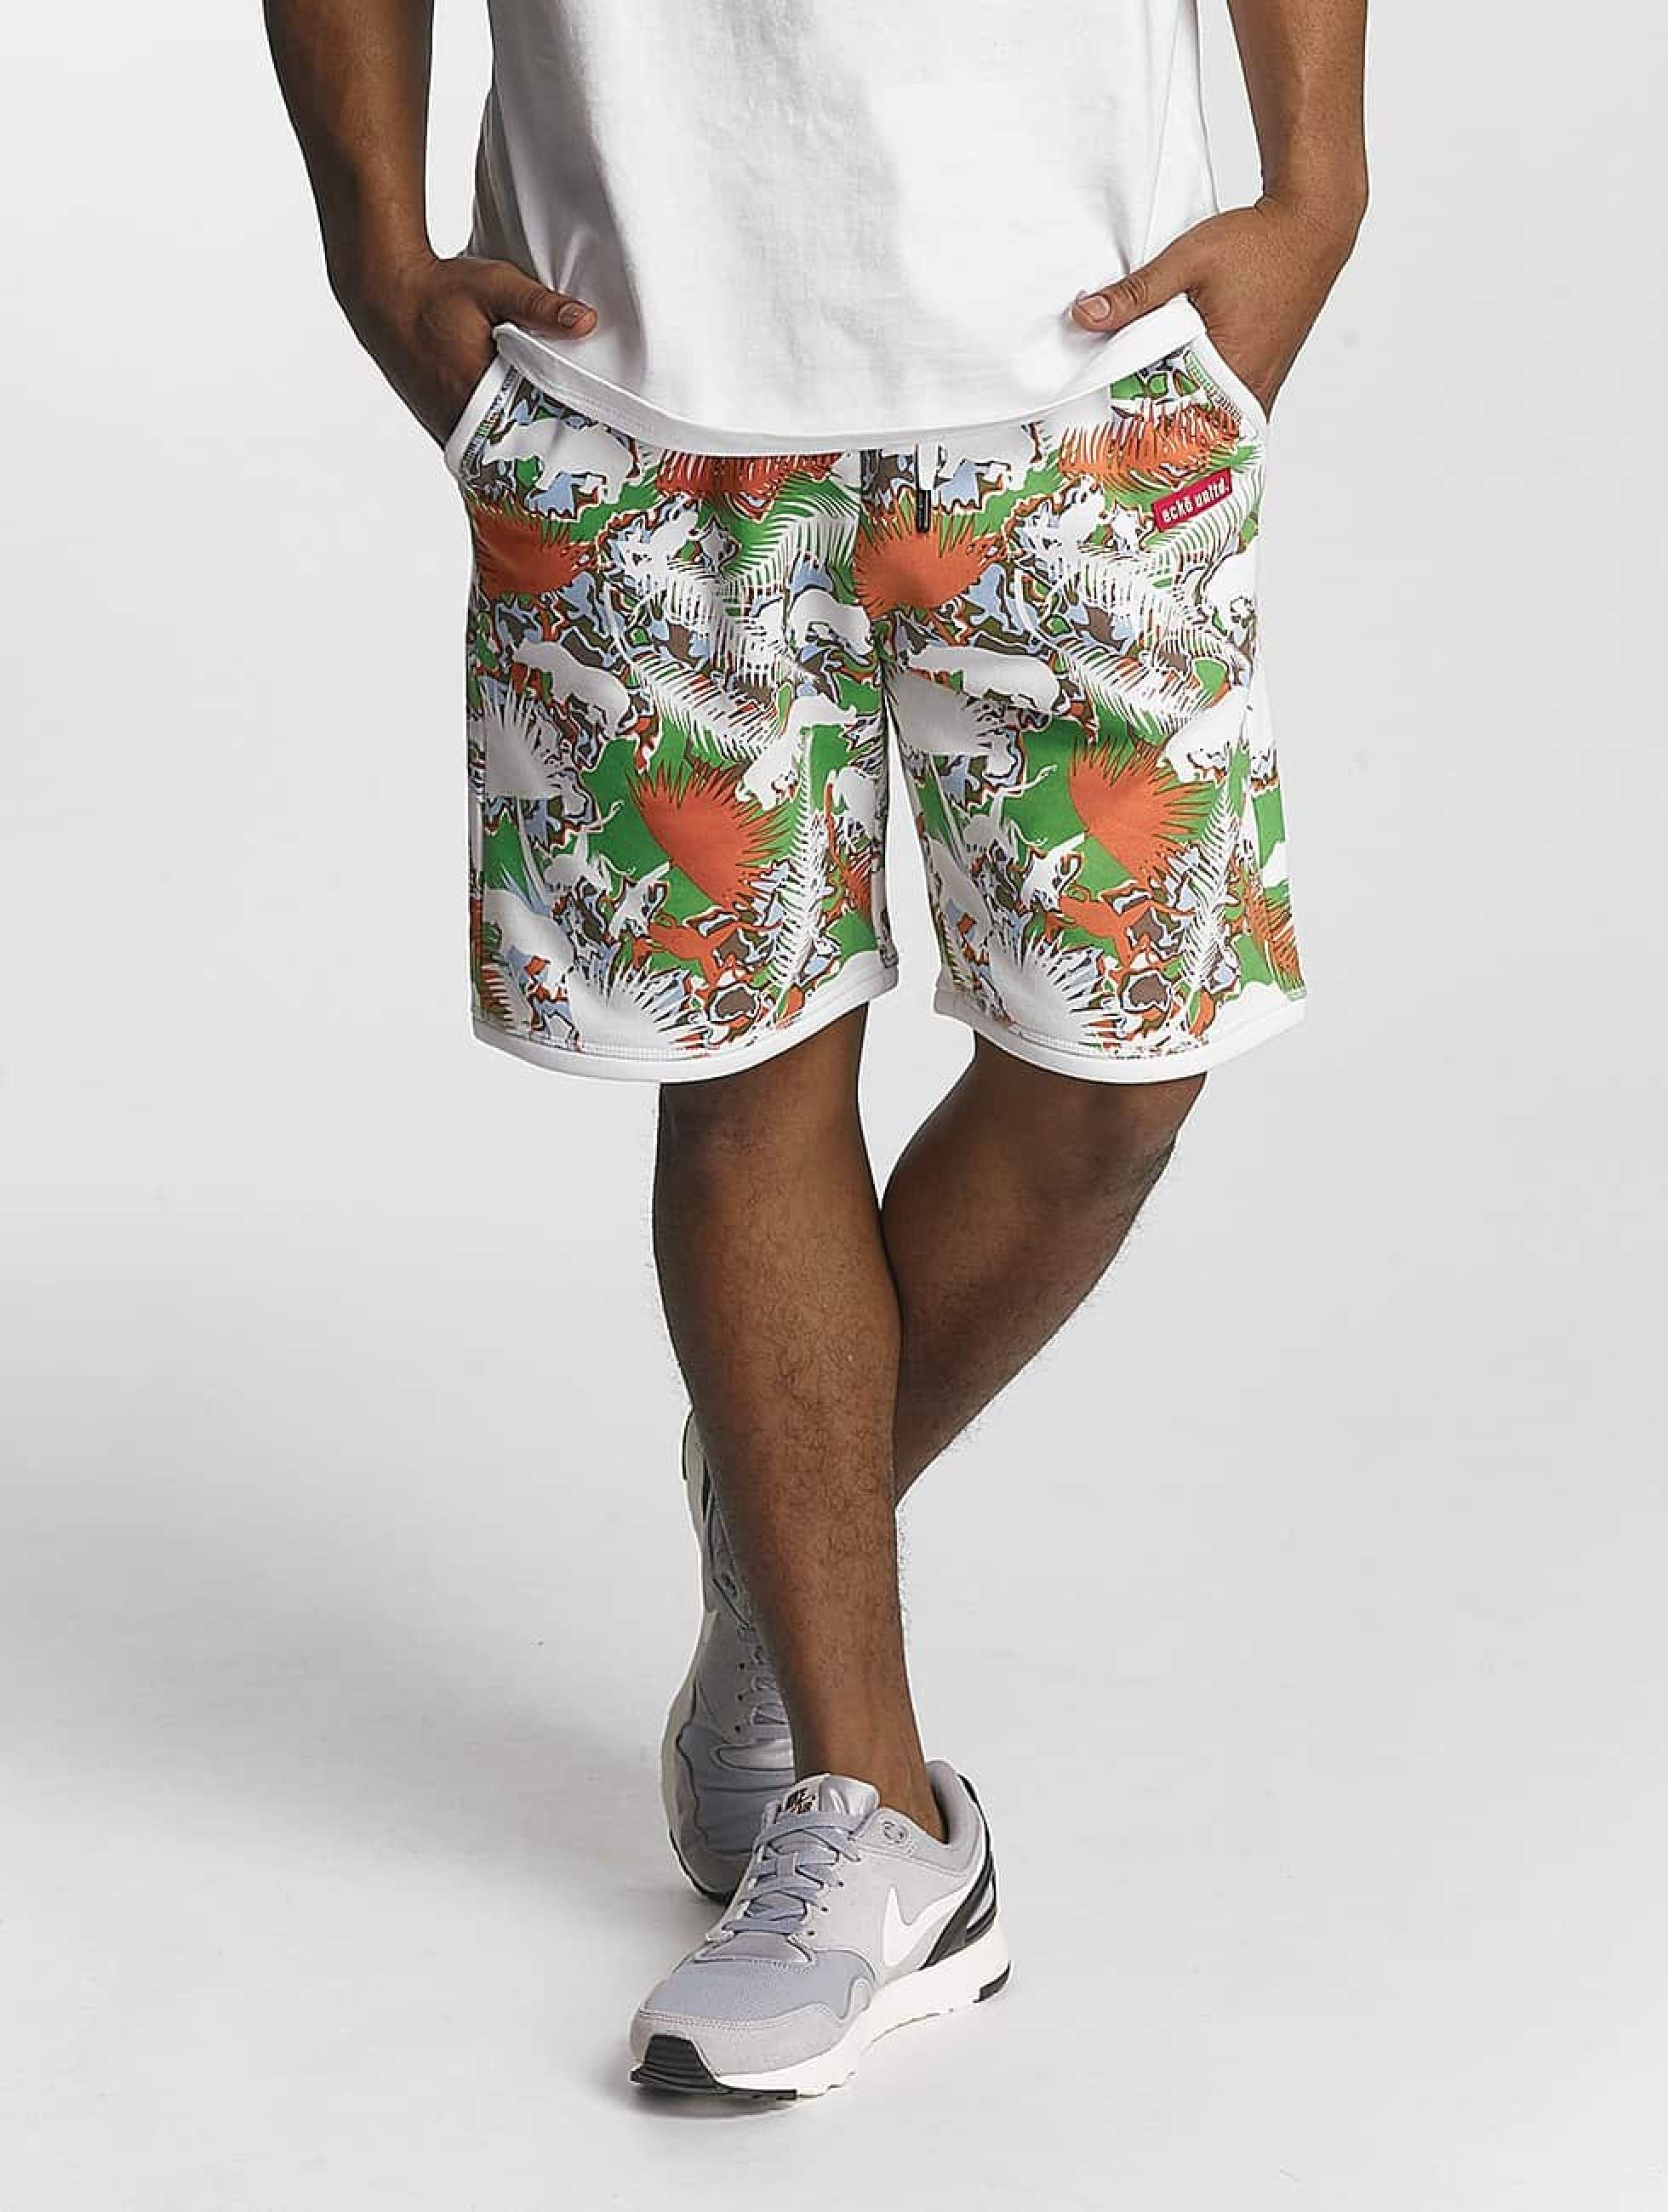 Ecko Unltd. / Short AnseSoleil in white XL